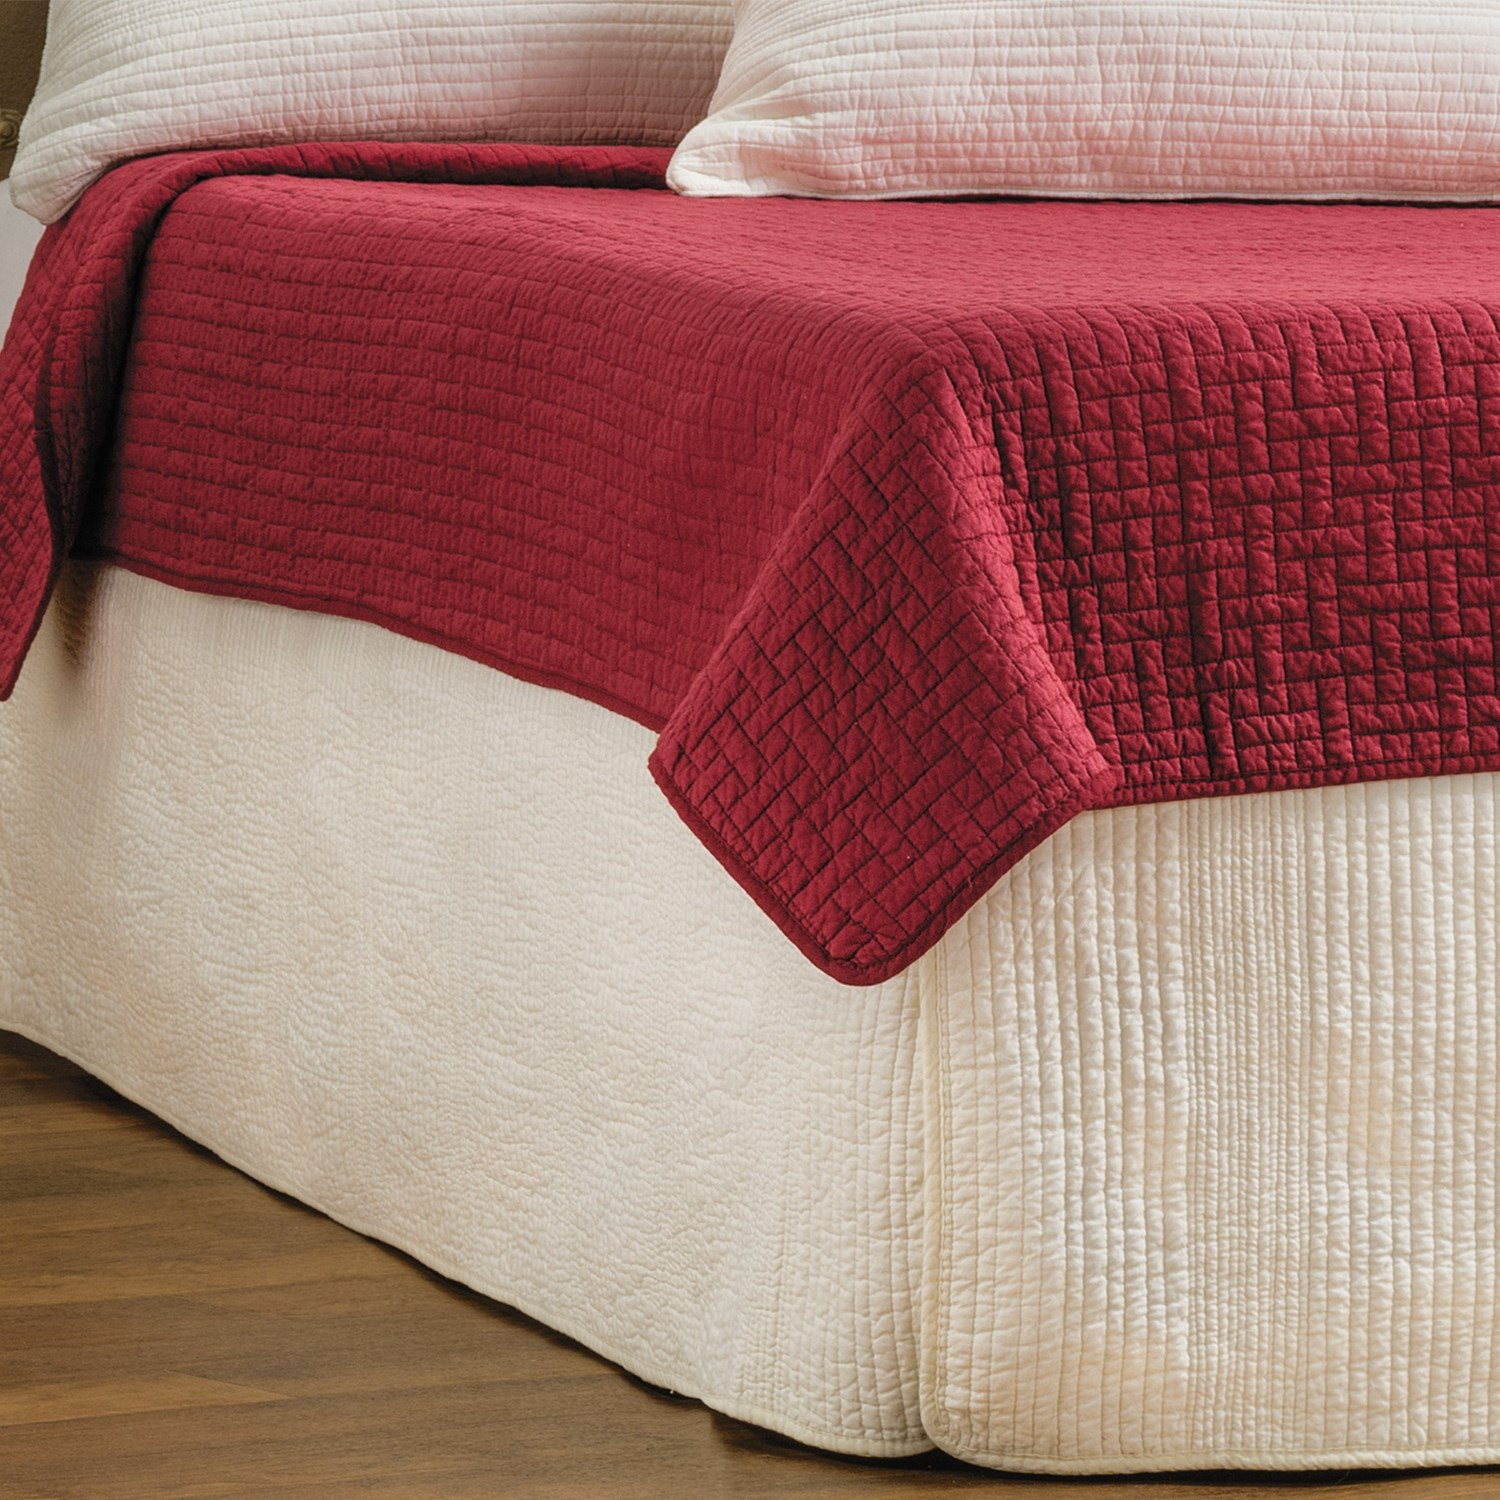 What Are The Dimensions Of A King Size Bed Skirt